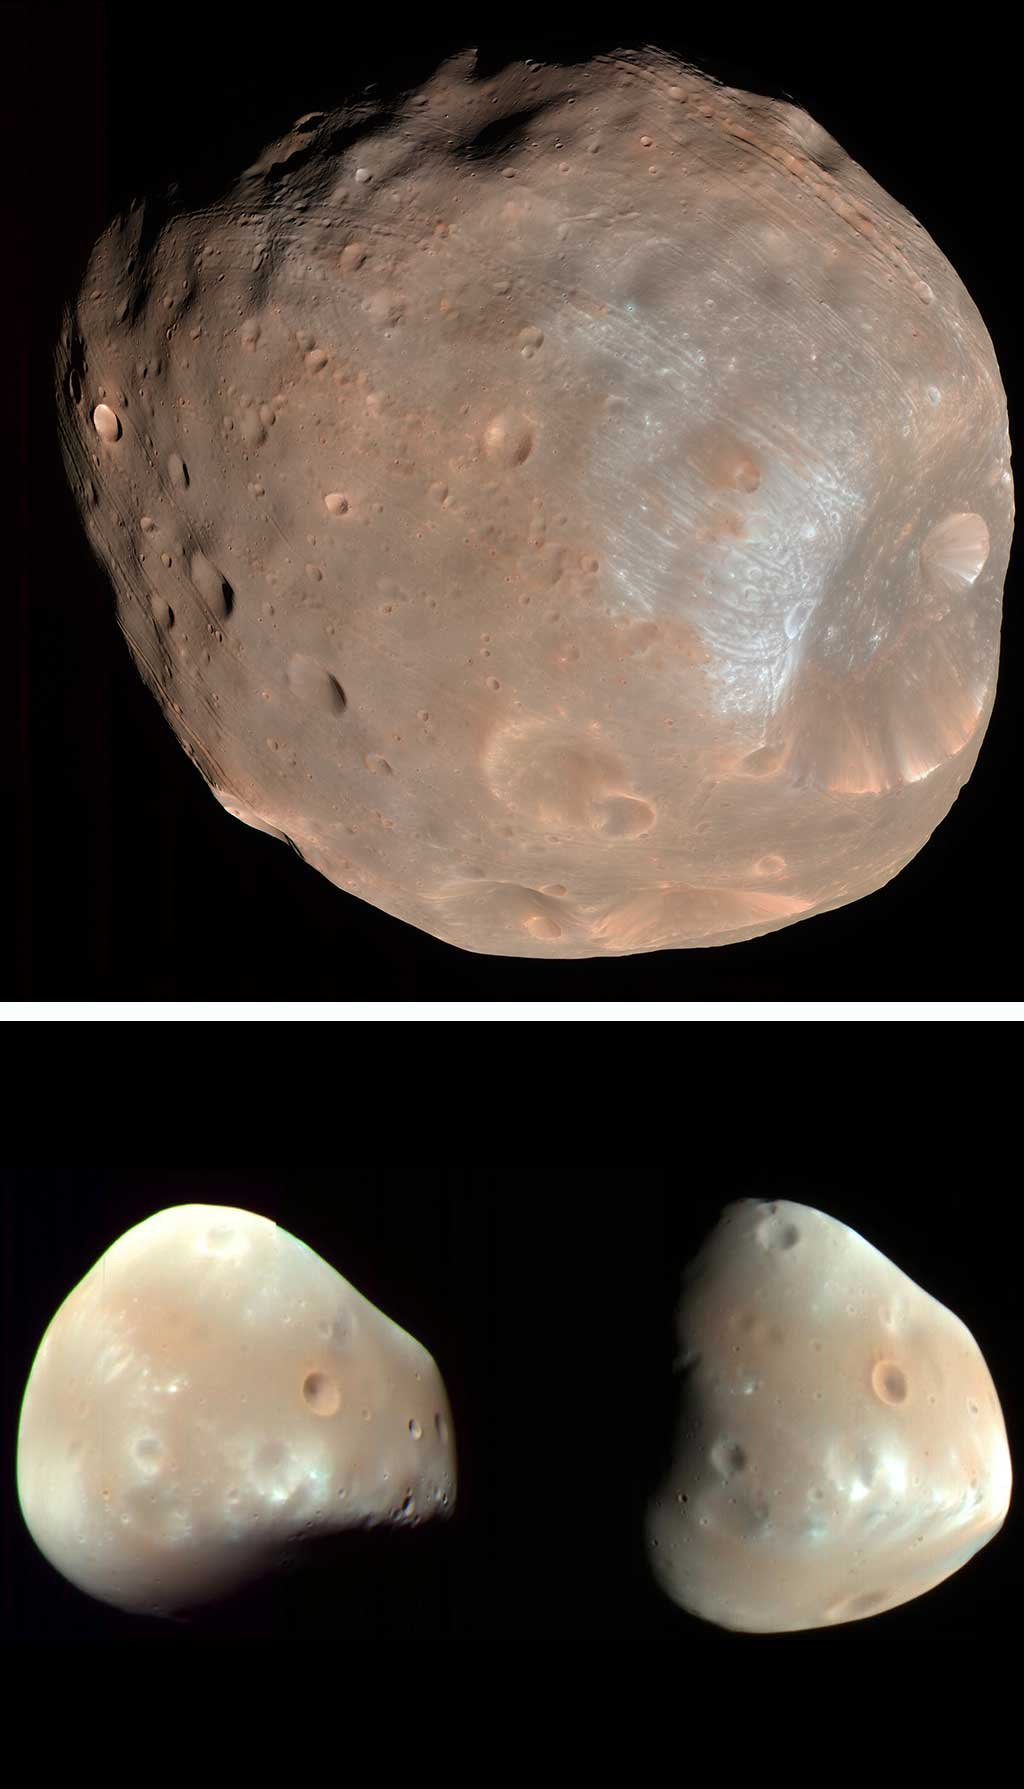 Image of Deimos and Phobos from Mars.